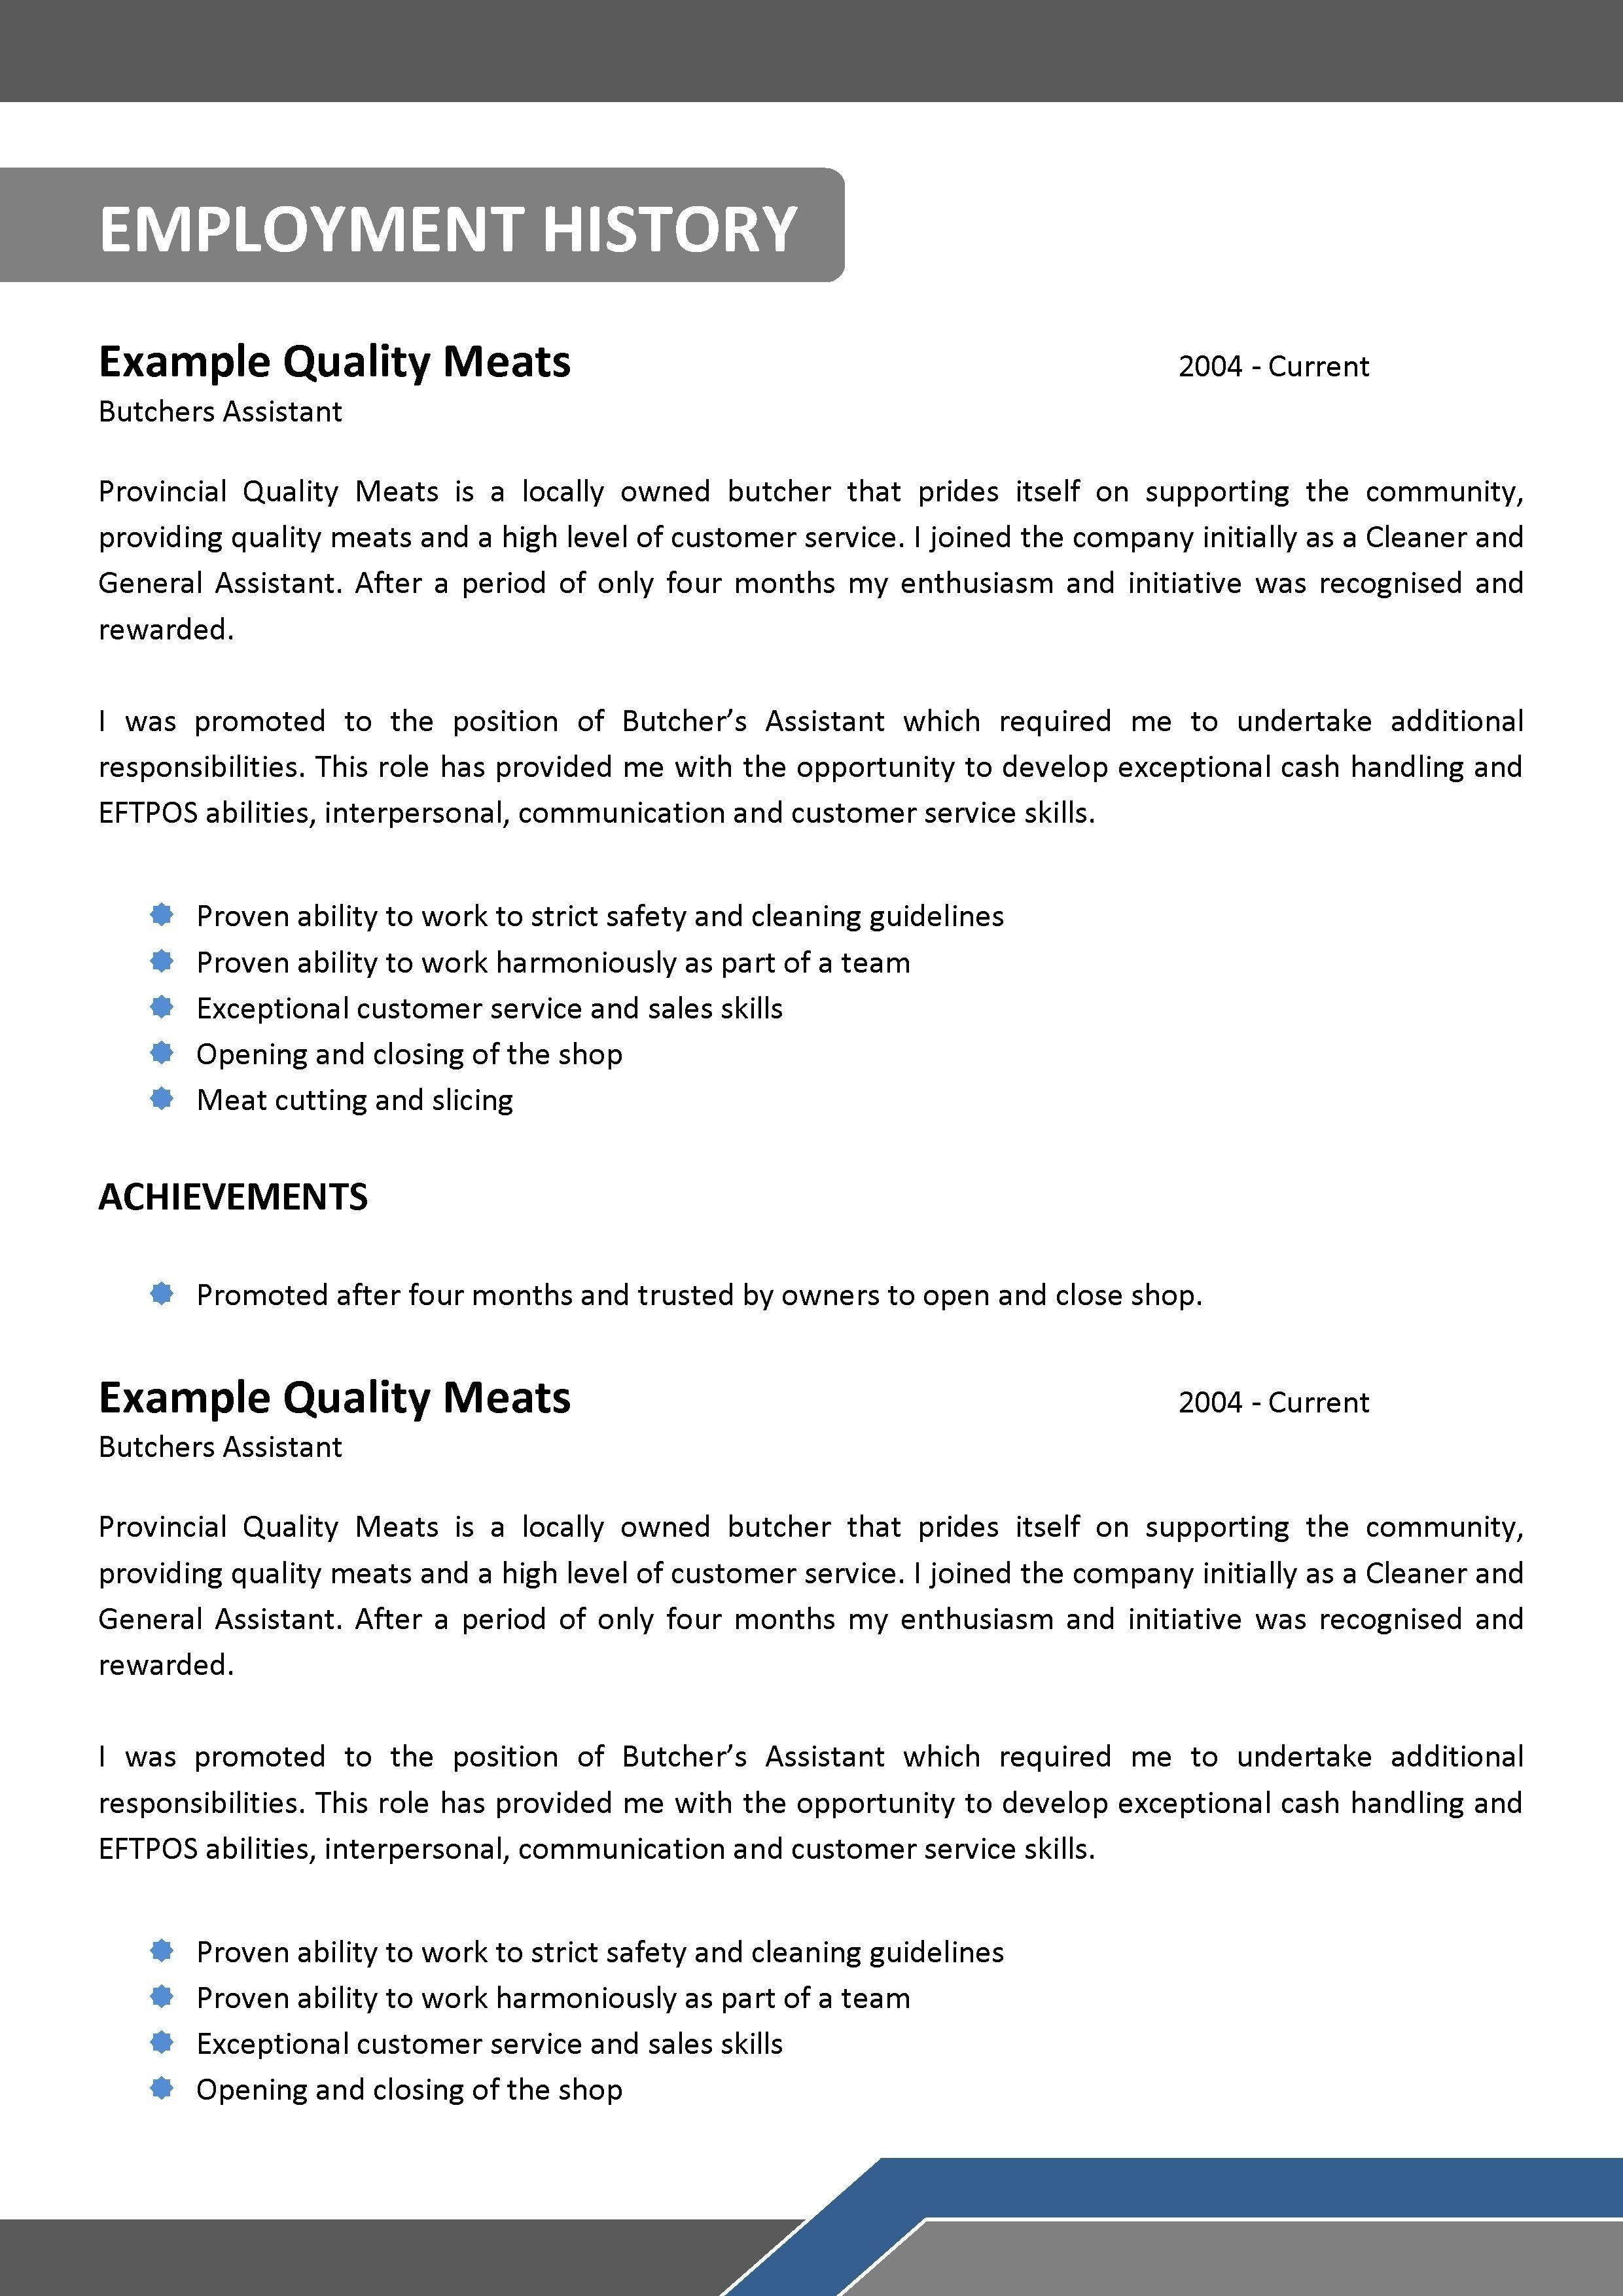 Free Google Resume Templates And Builder Cover Letter  Home